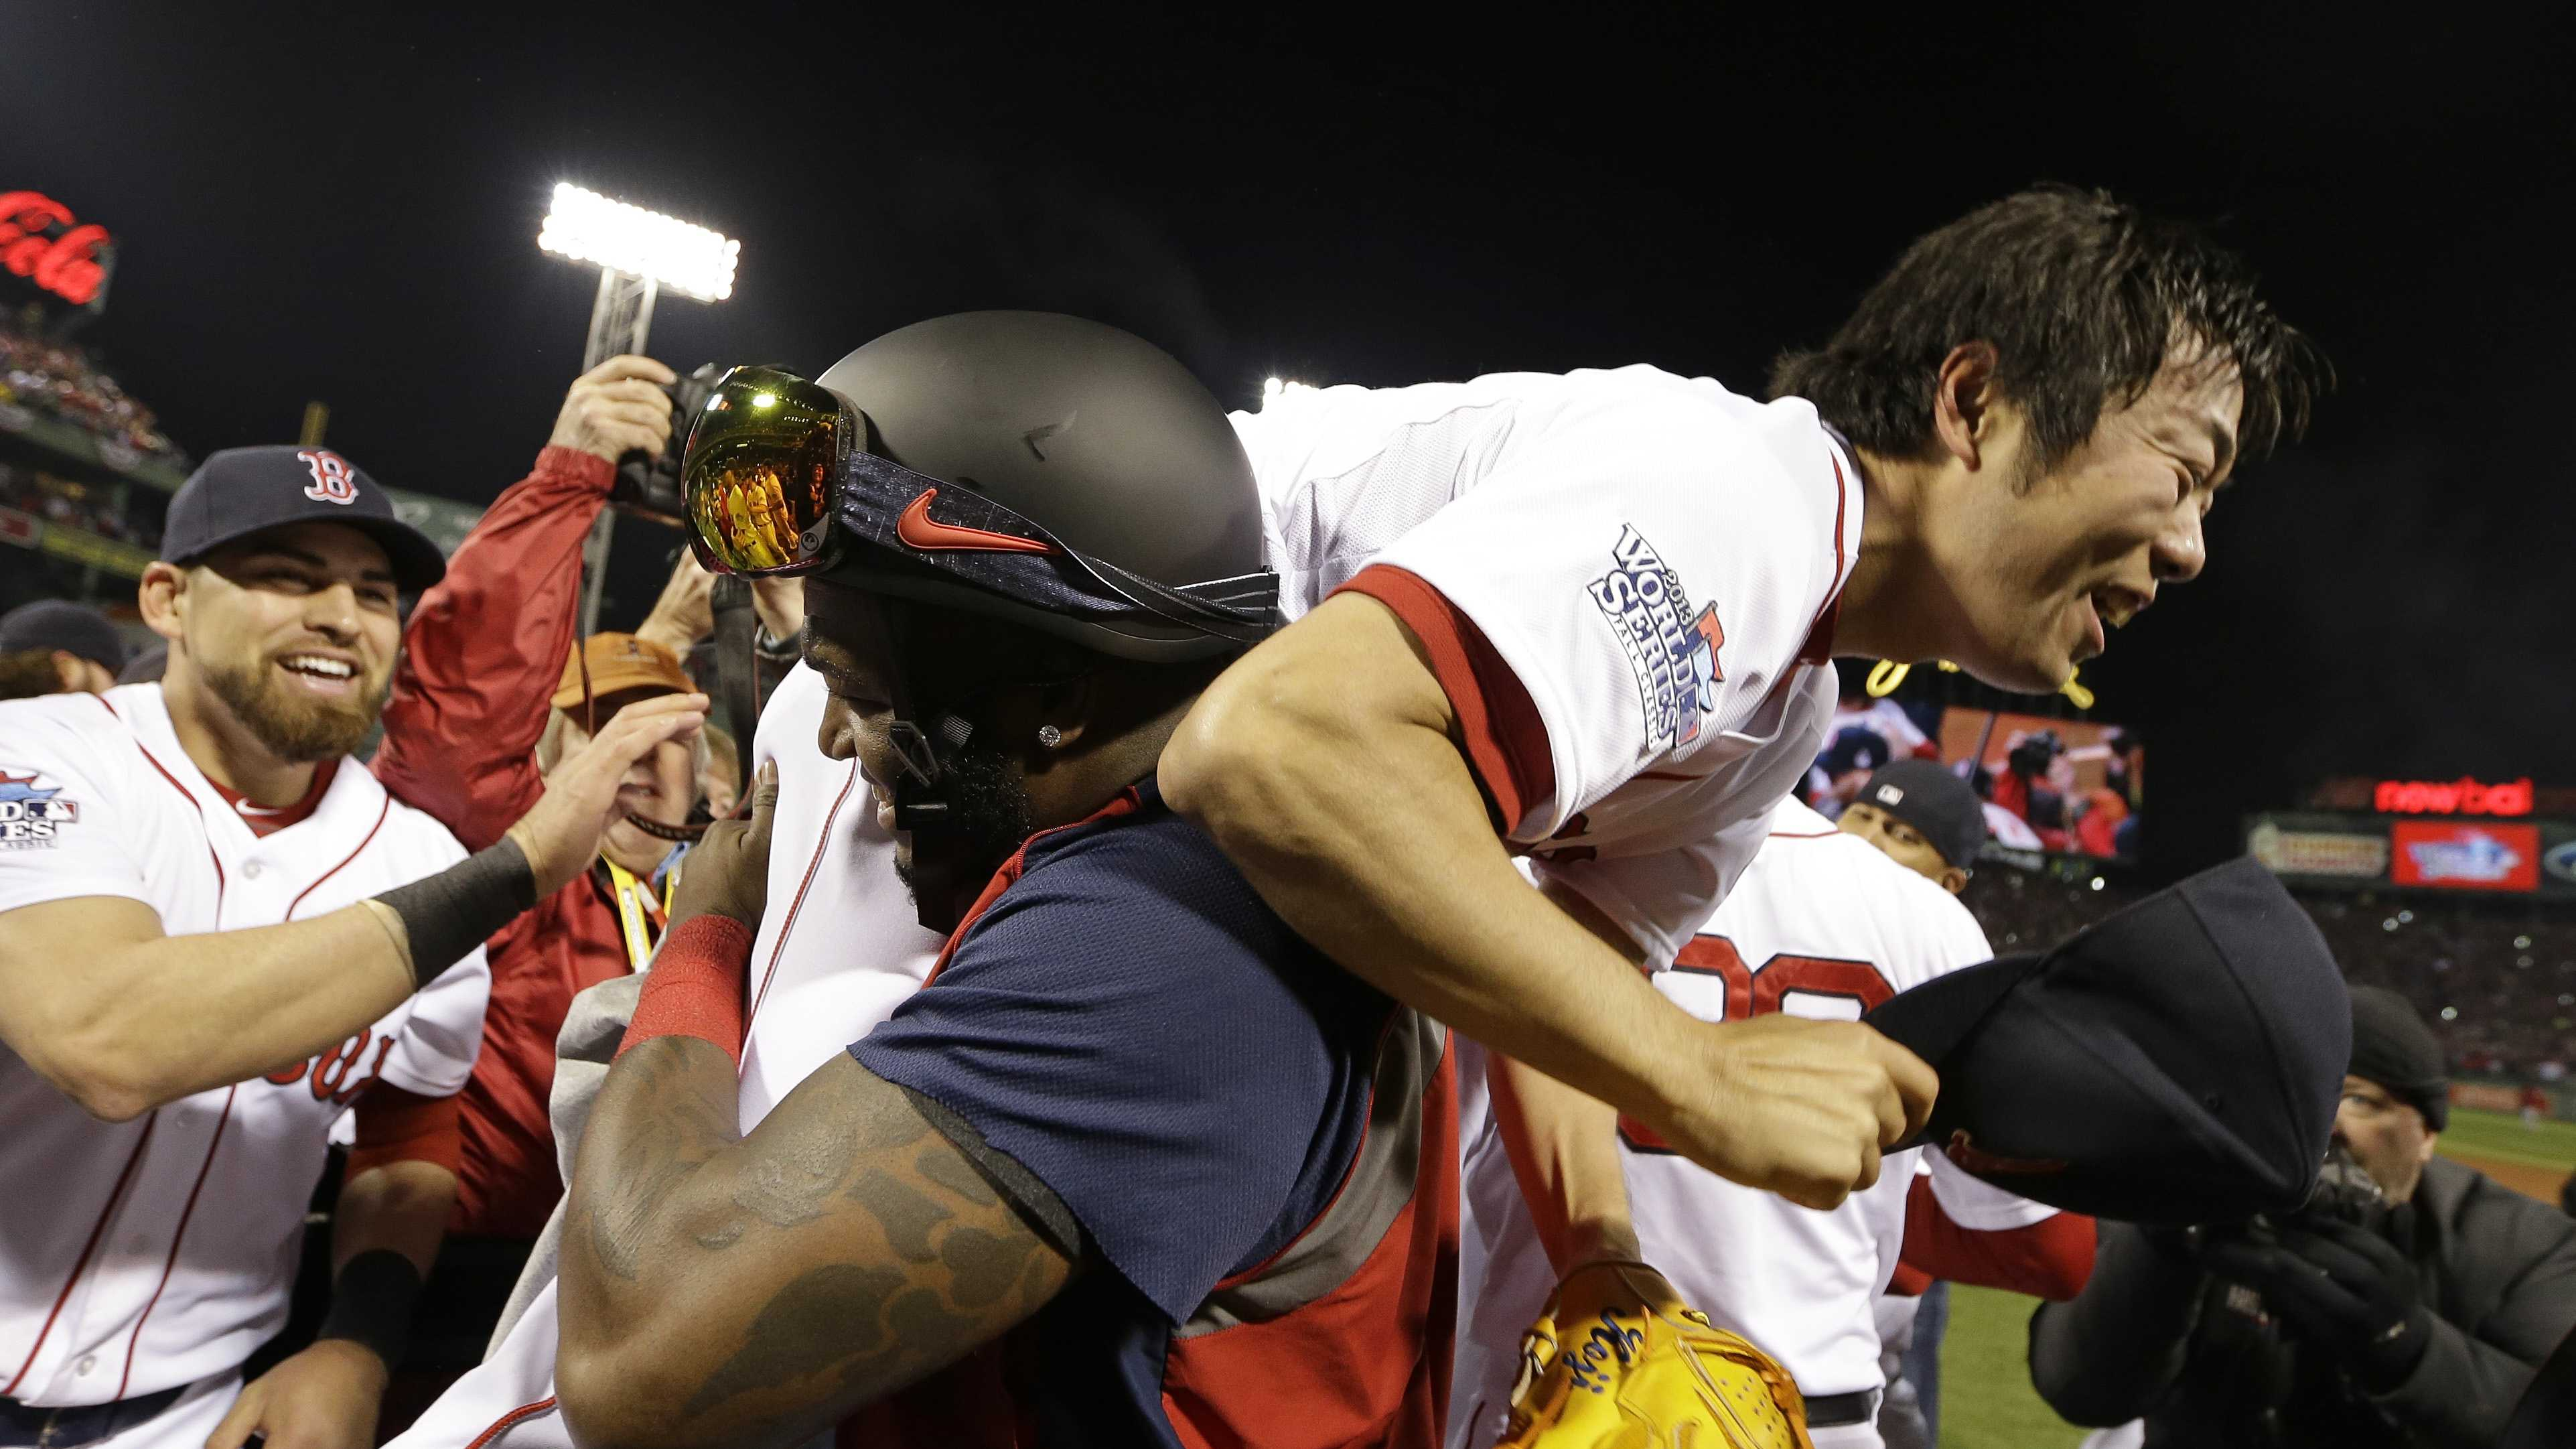 Boston Red Sox's David Ortiz lifts relief pitcher Koji Uehara after Boston defeated the St. Louis Cardinals in Game 6 of baseball's World Series Wednesday, Oct. 30, 2013, in Boston. The Red Sox won 6-1 to win the series.